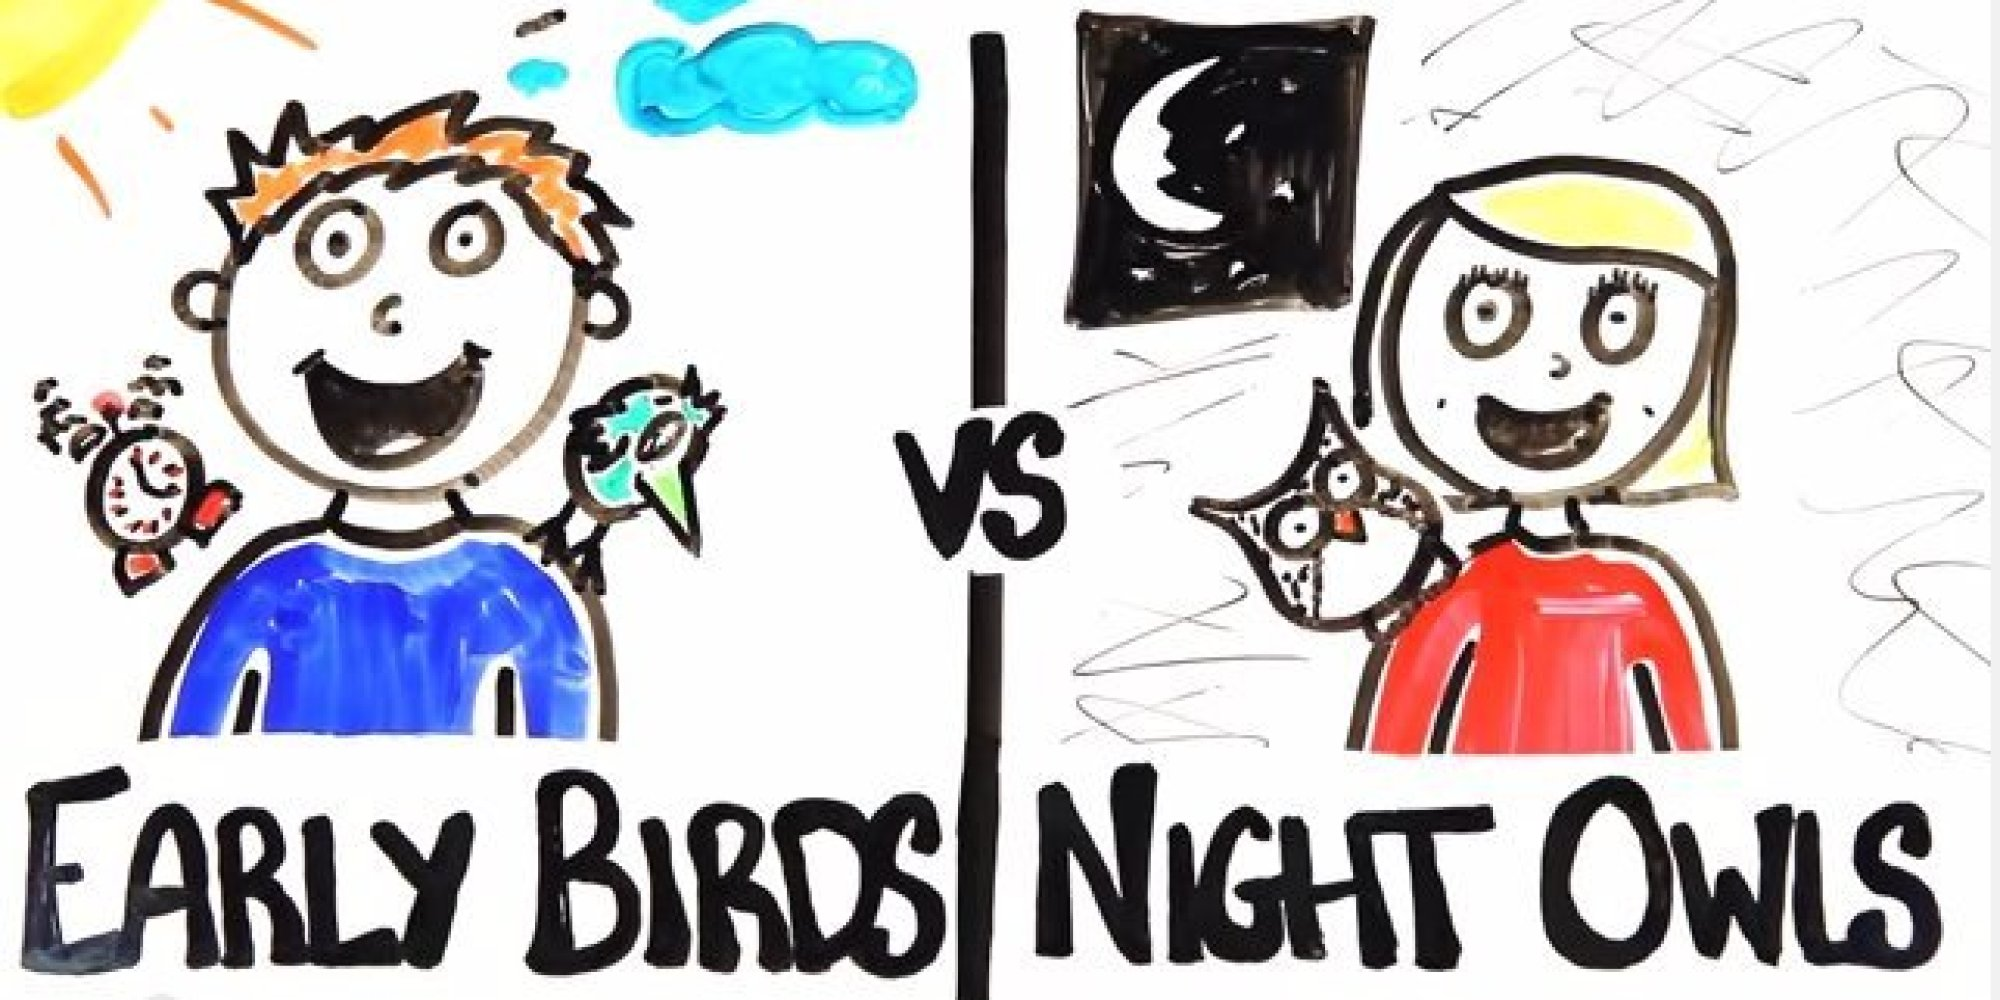 The Pitfalls of Being a Night Owl